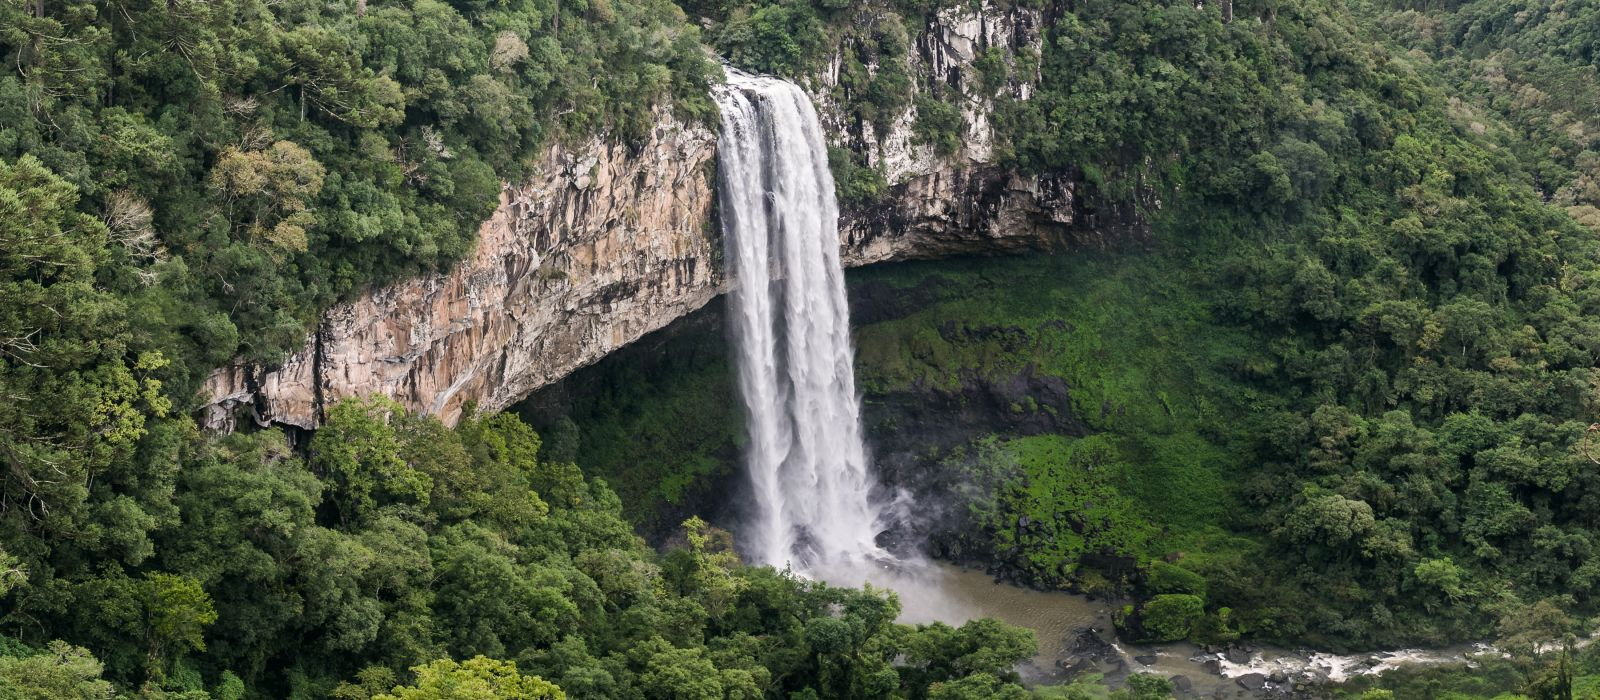 Beautiful view of Caracol Waterfall (Snail Waterfall) - Canela- Rio Grande do Sul - Brazil, South America